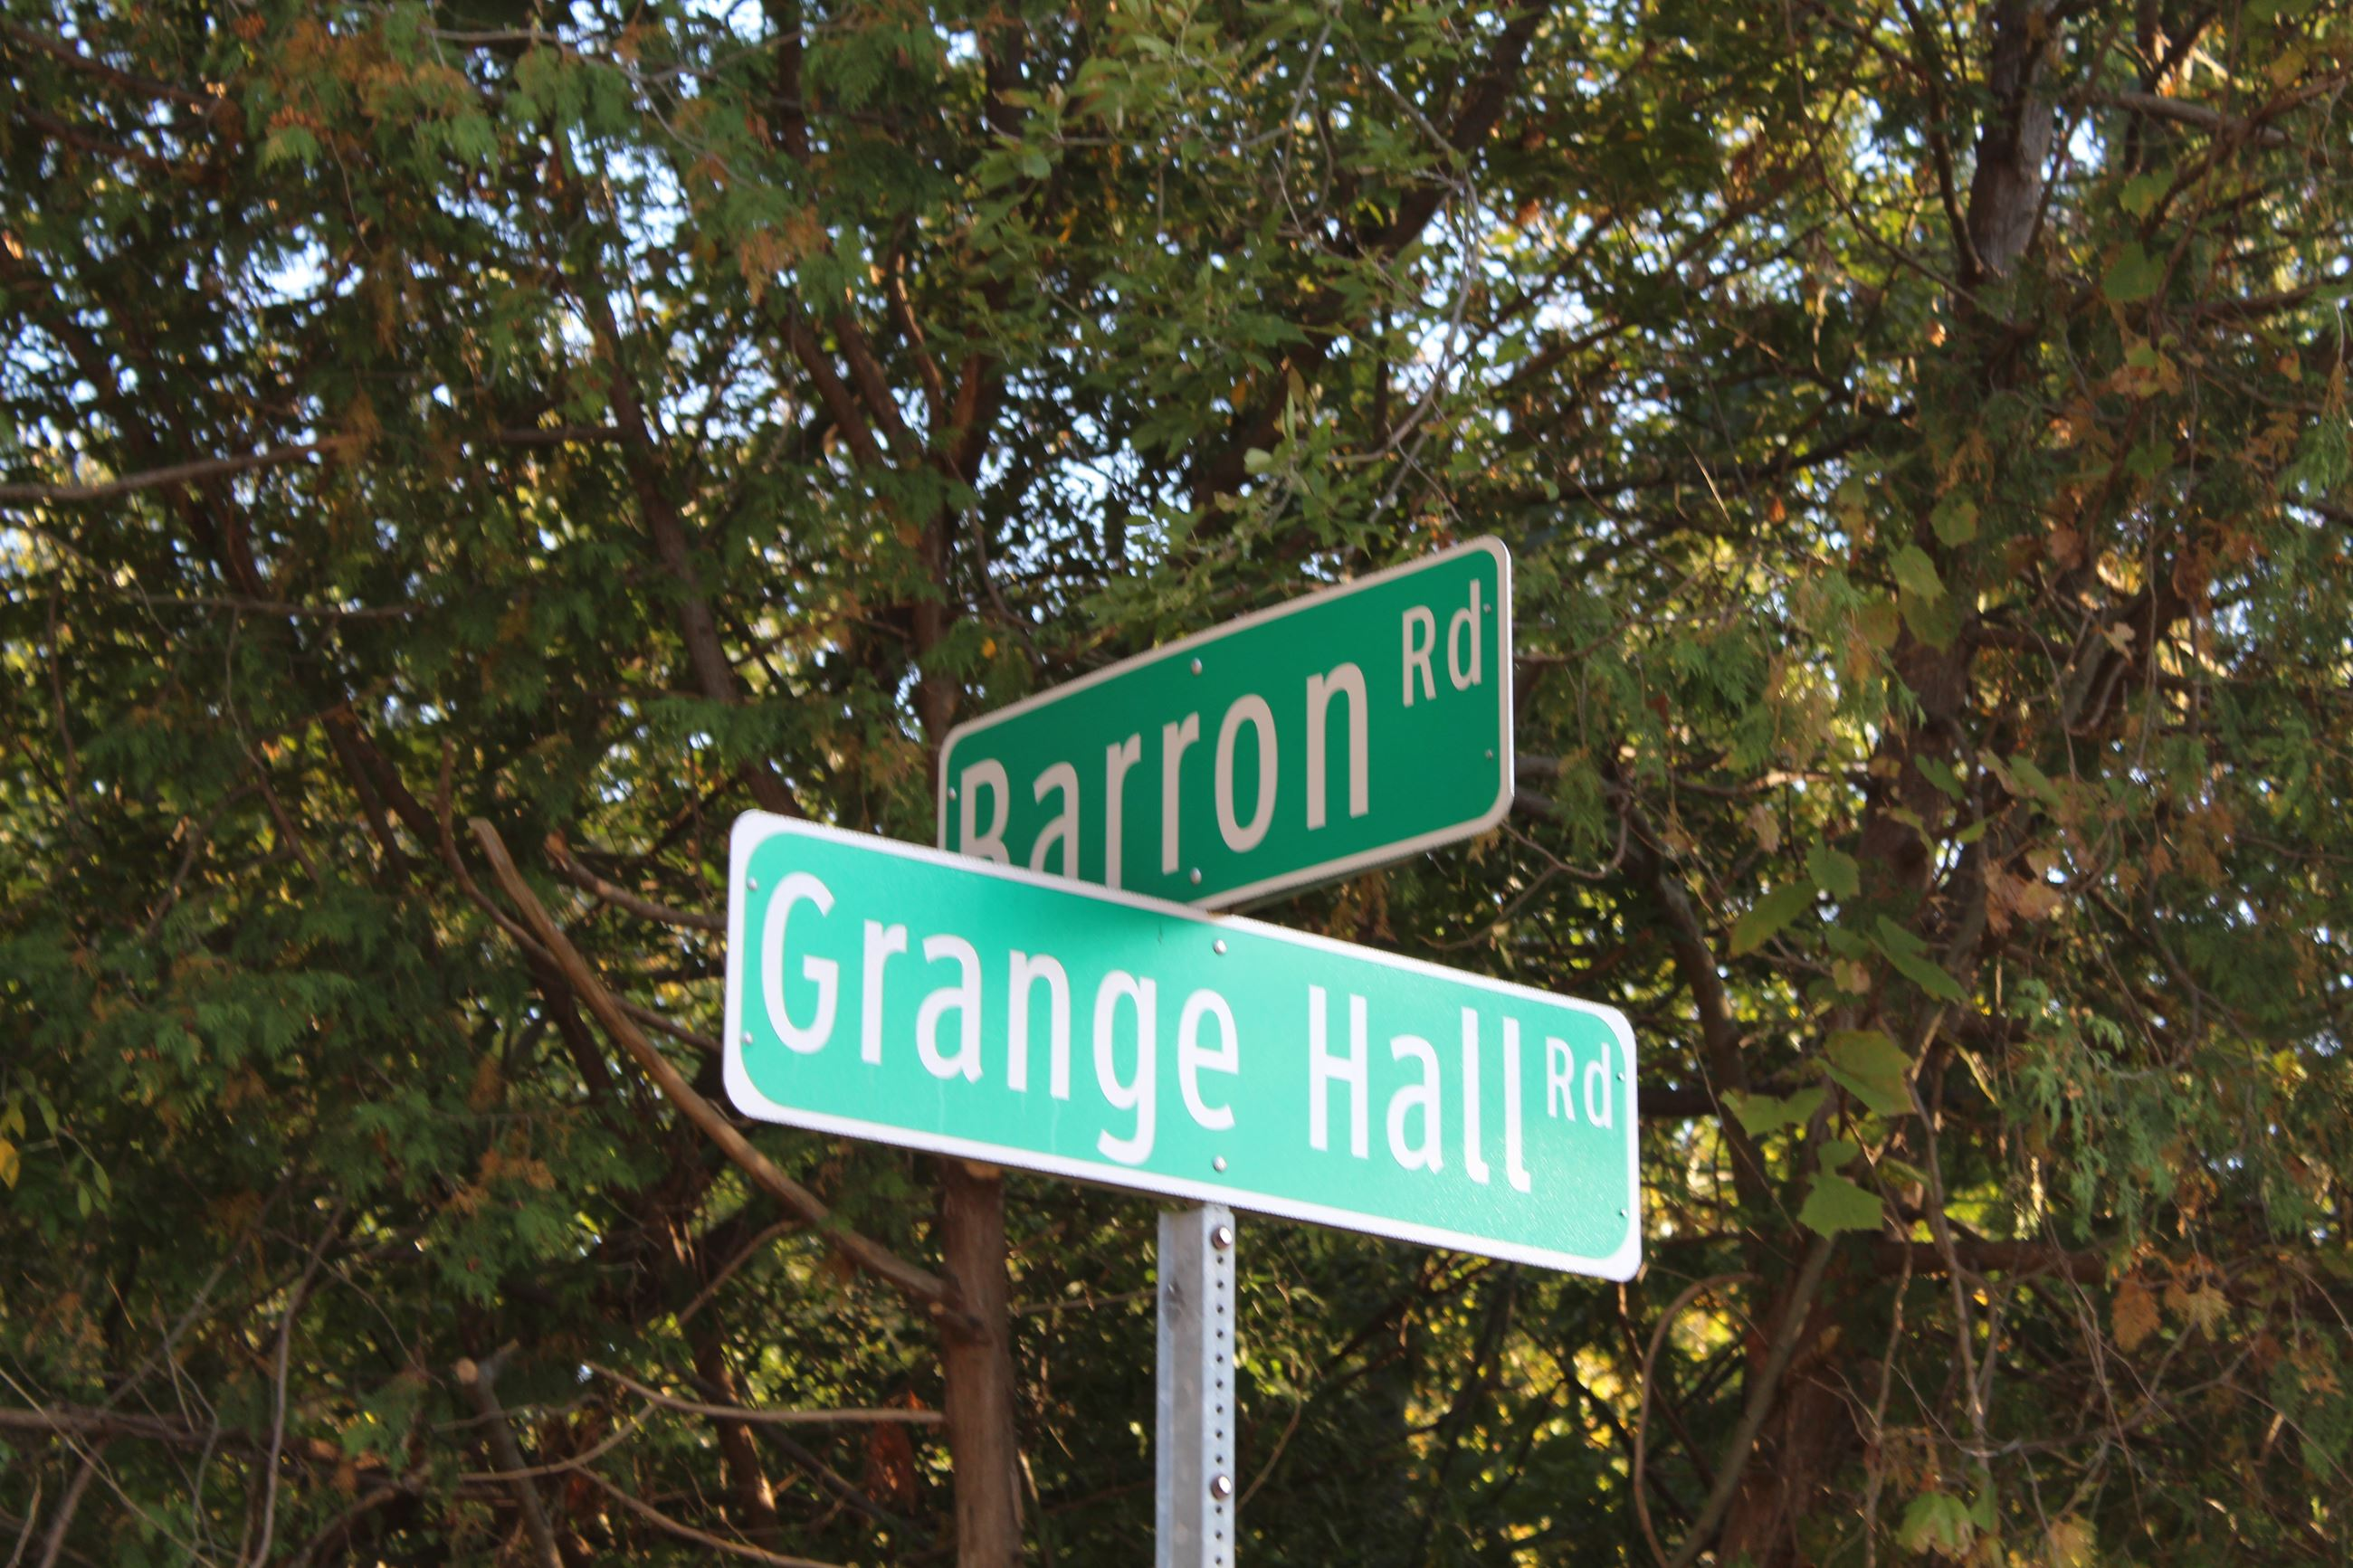 Barron Road and Grange Hall Road sign